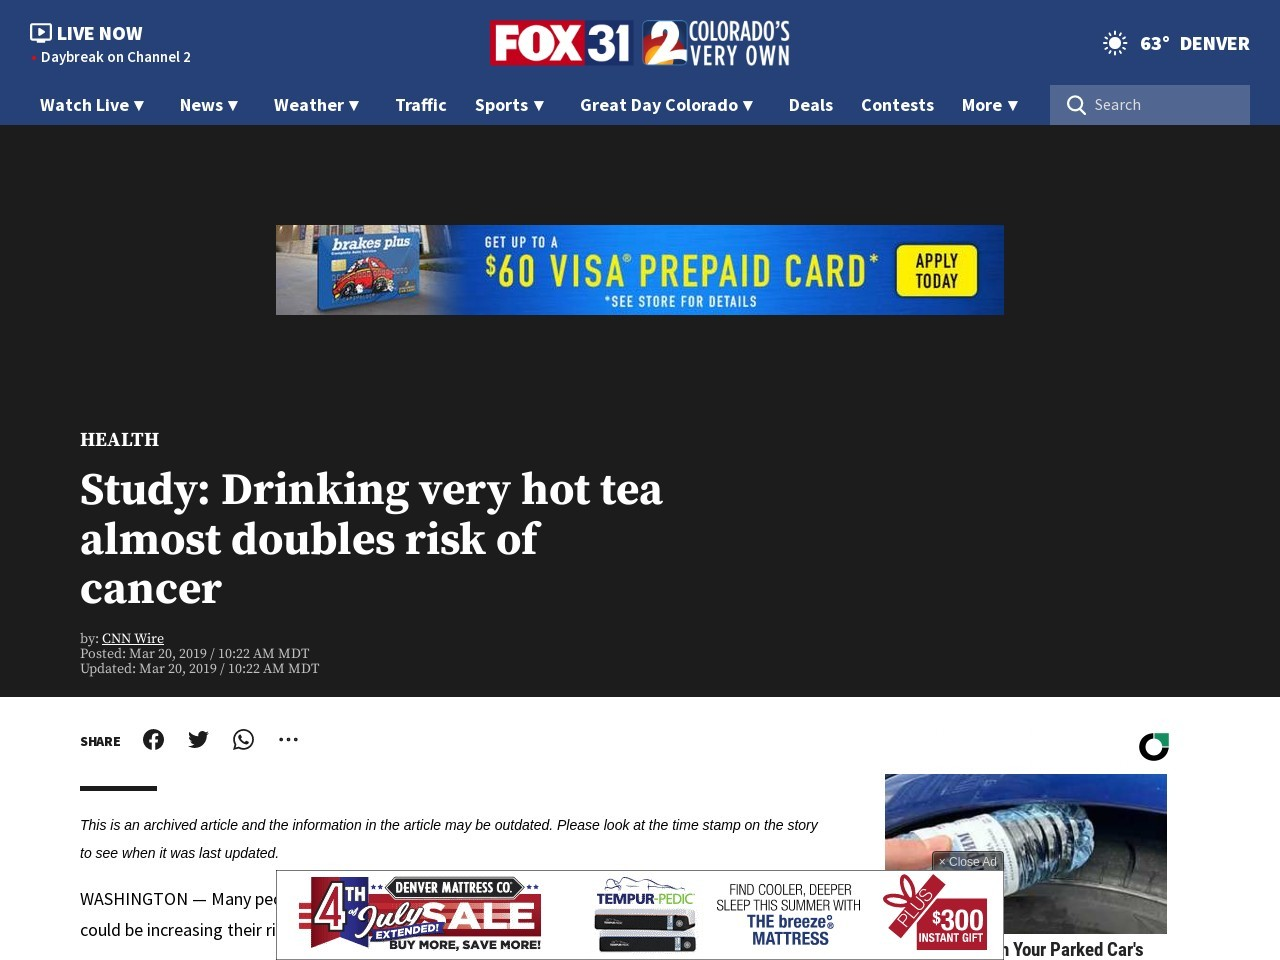 Study: Drinking very hot tea almost doubles risk of cancer